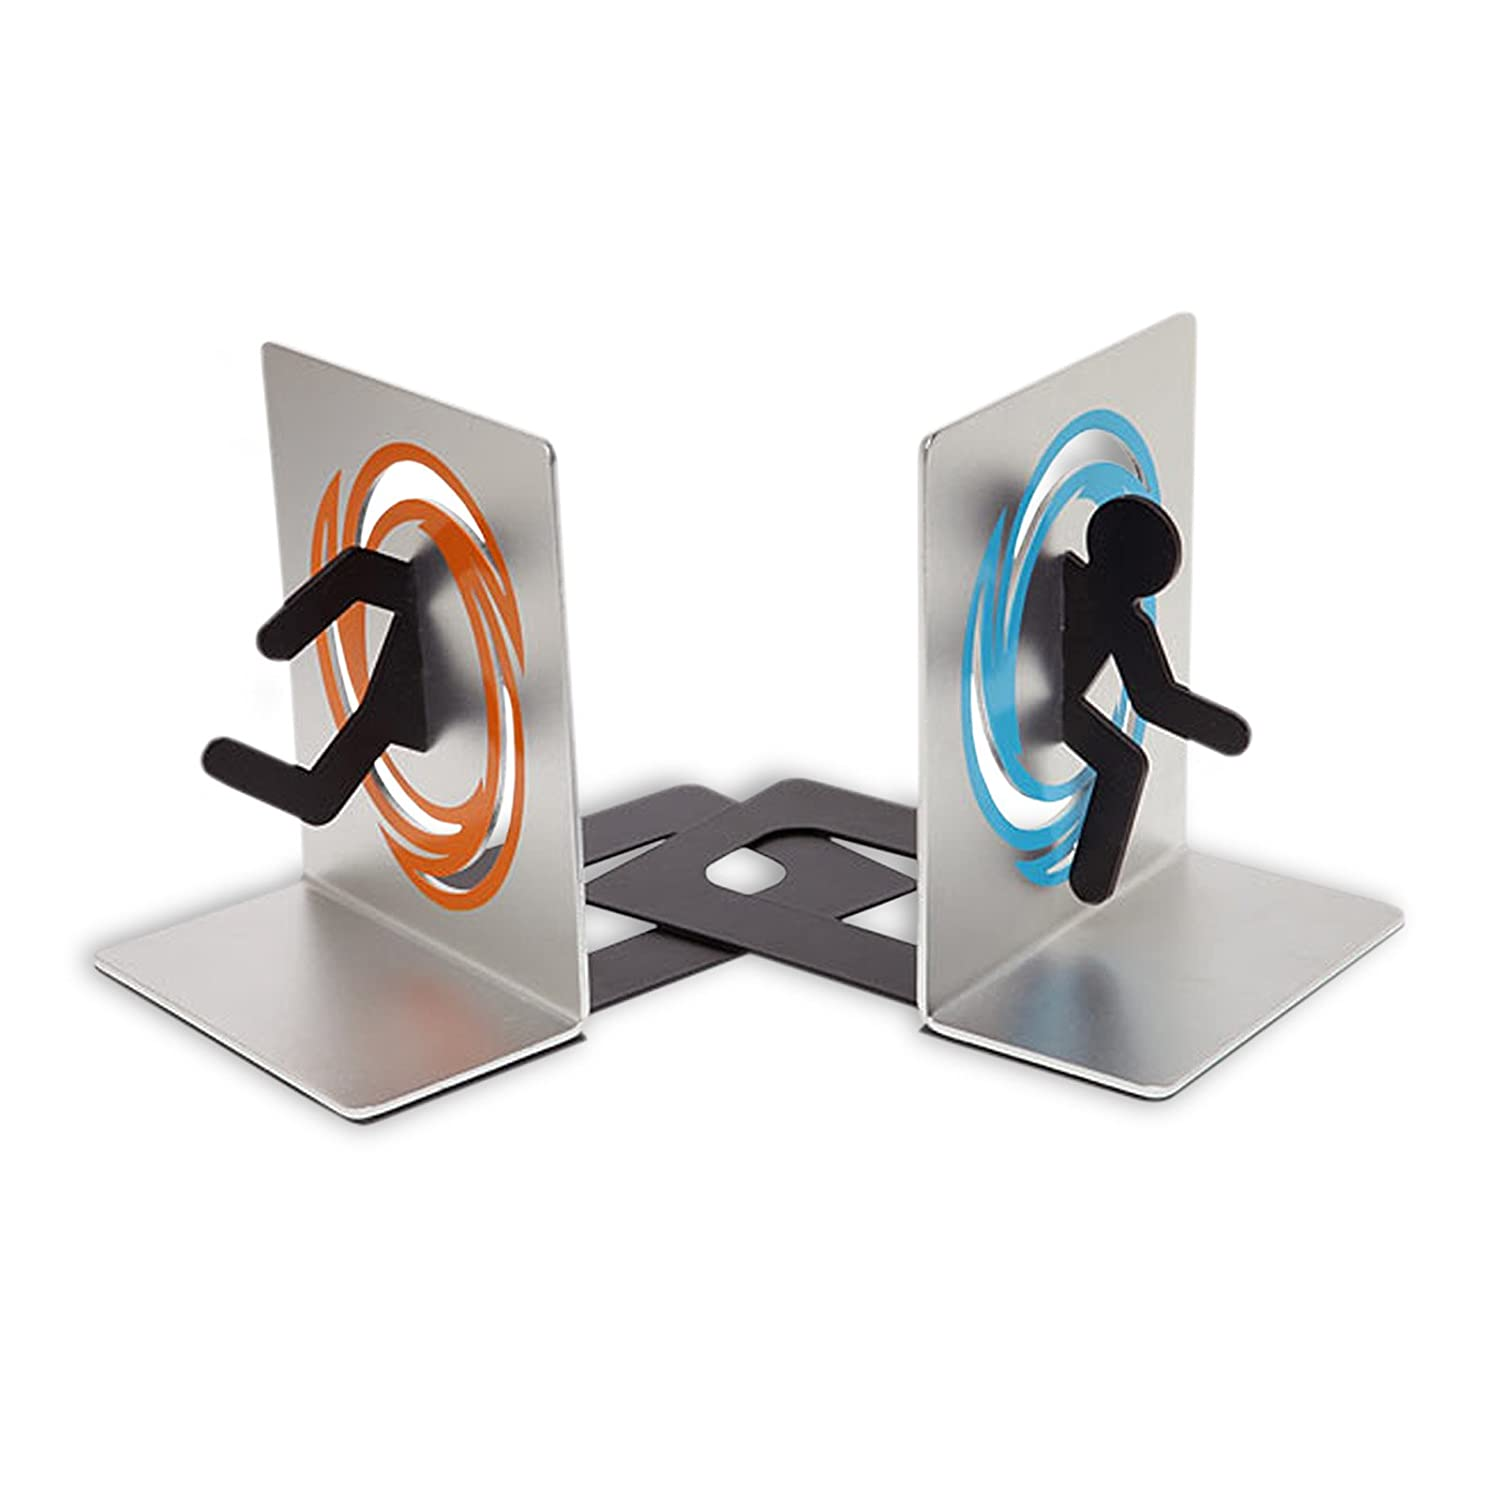 Portal 2 Metall Buchstützen Set mit Anti-Rutsch-Sohle Alu Look orange blau online bestellen